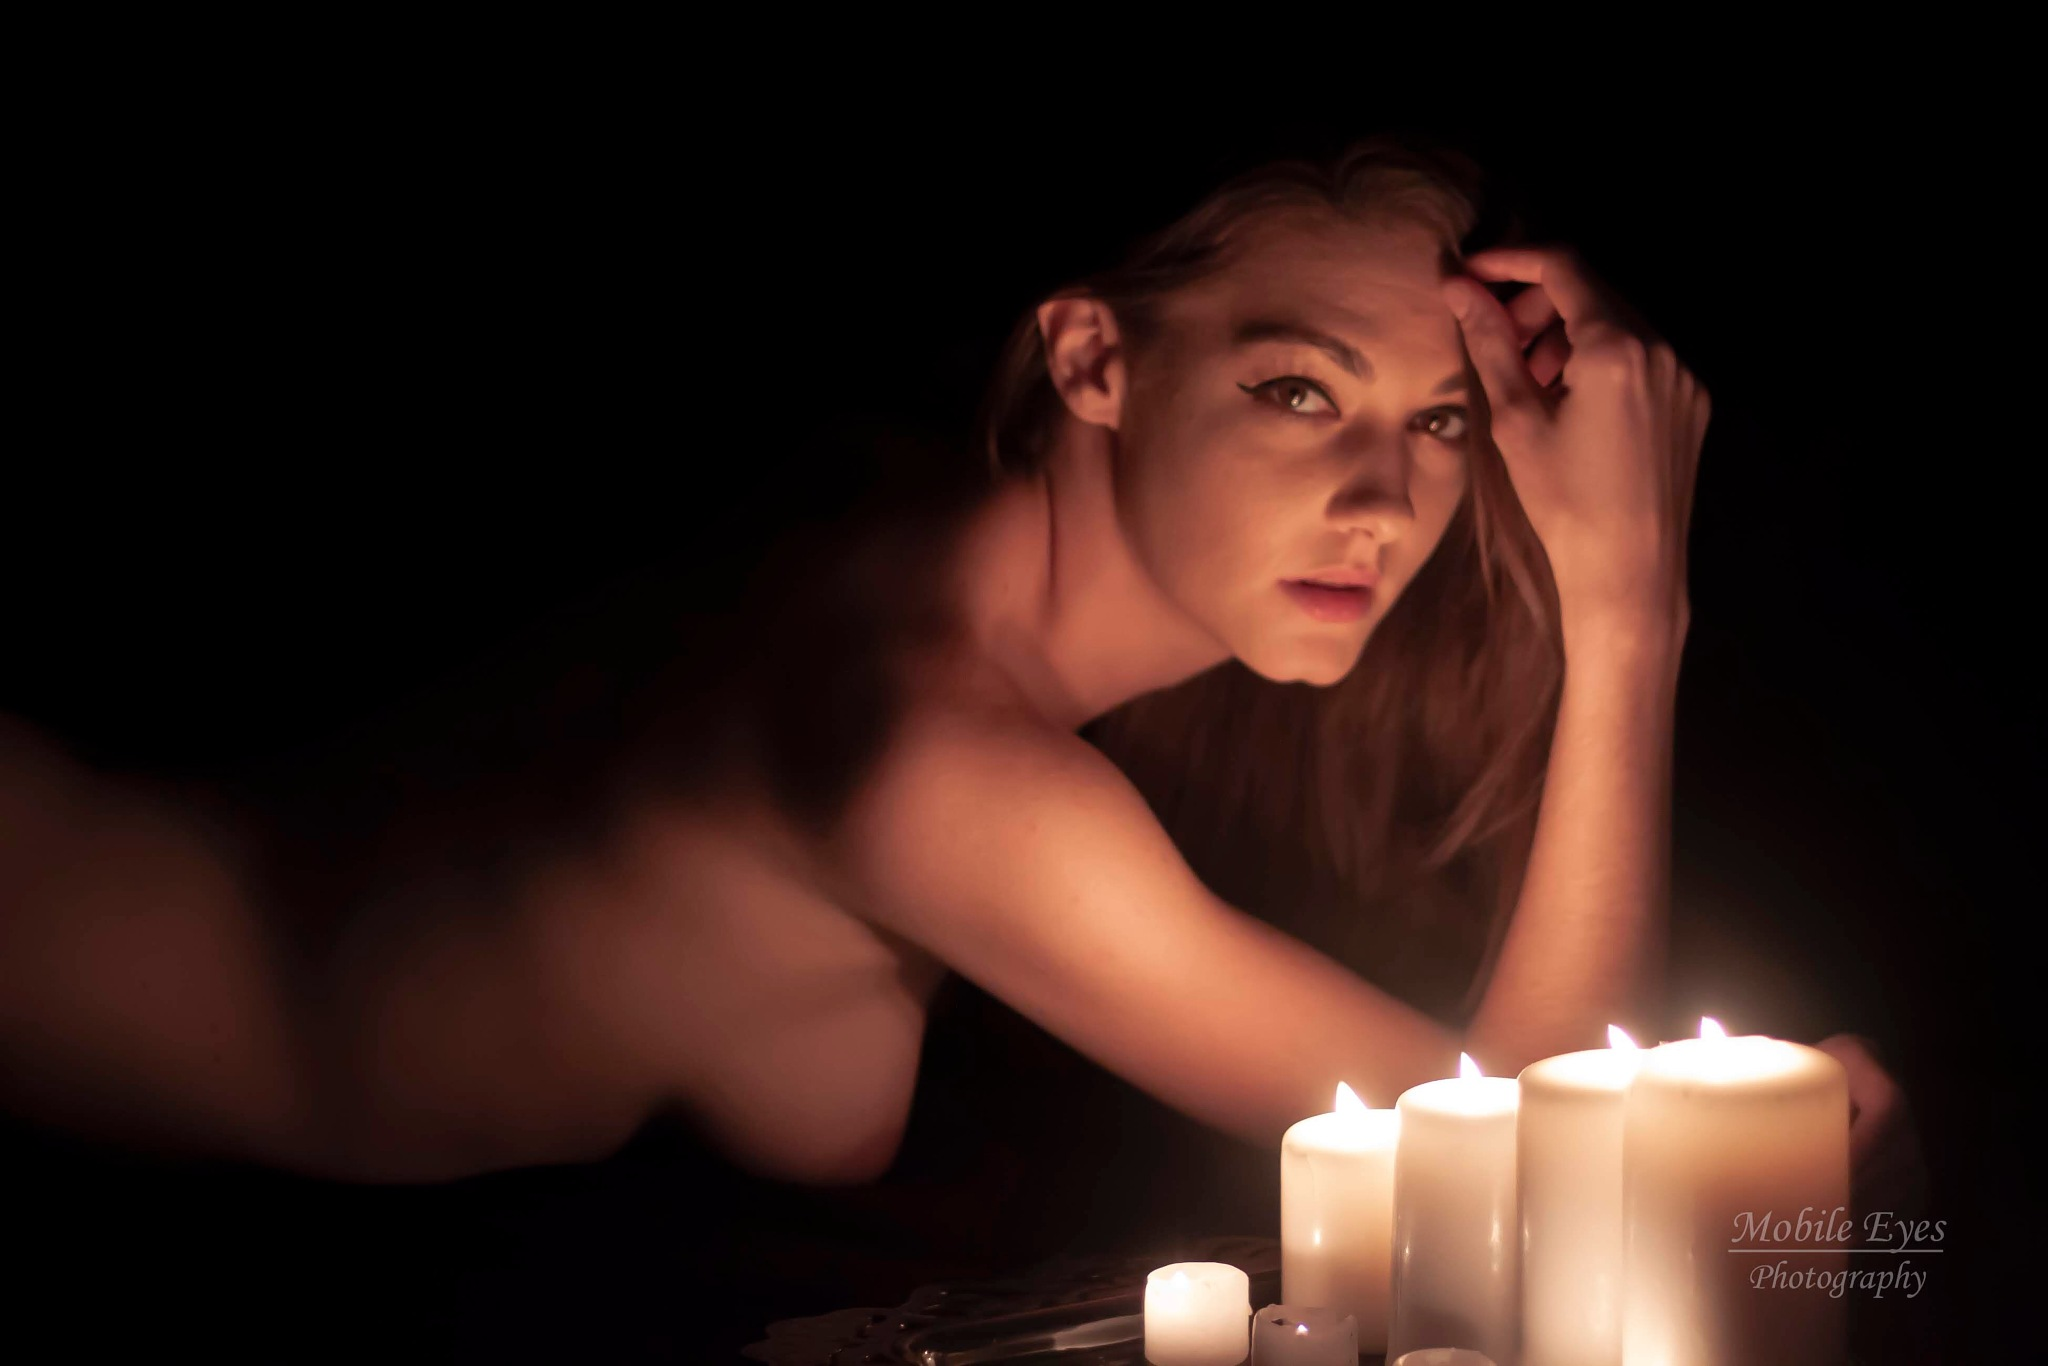 Dani by candlelight  by Mobileeyesphoto